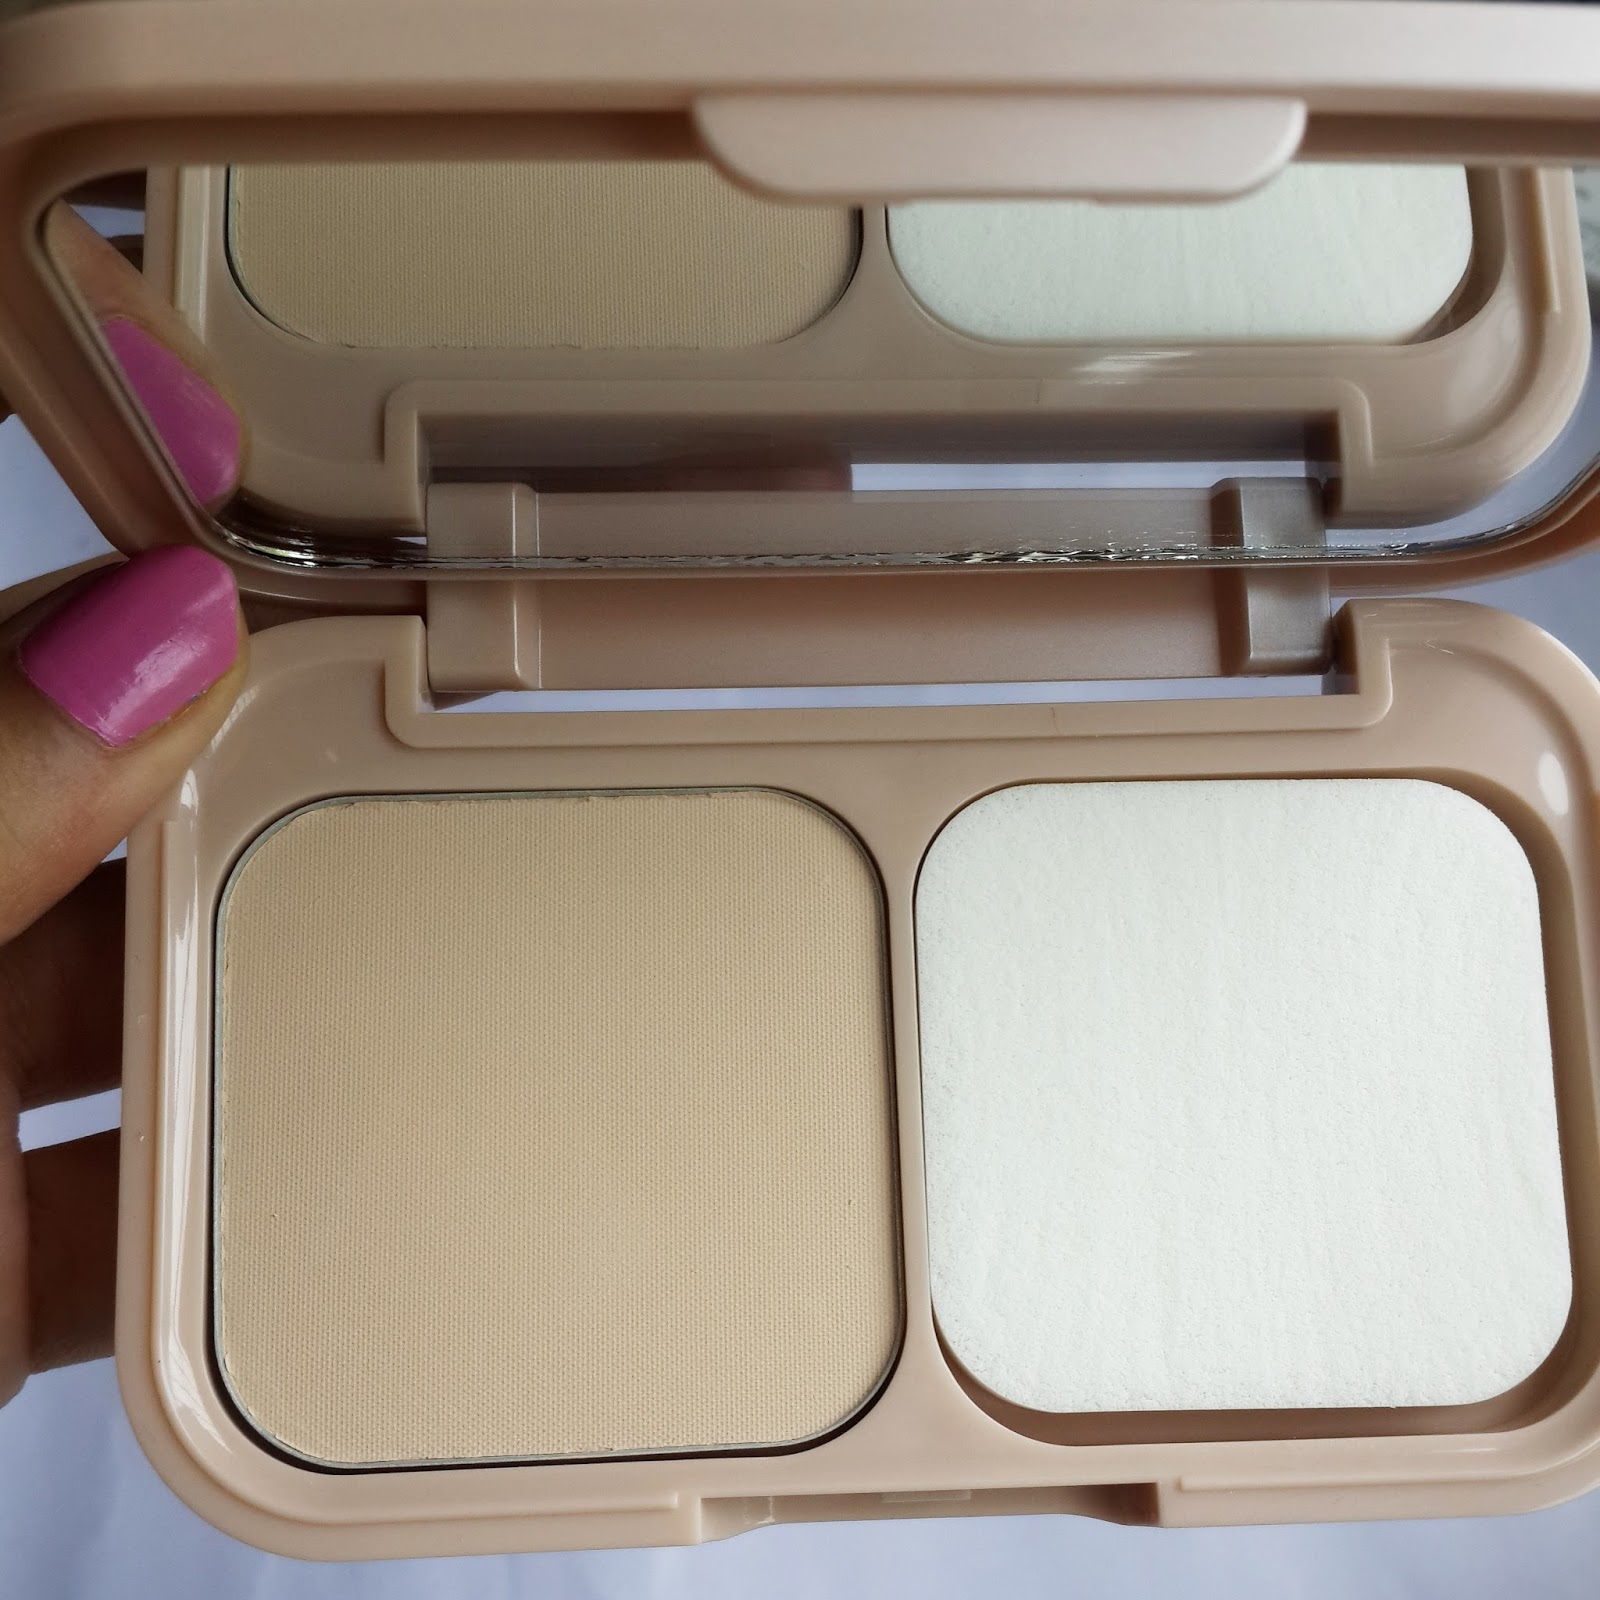 Ridzi Makeup Maybelline Dream Satin Two Way Cake Foundation Review Bedak Loreal Price Inr 550 Get Here